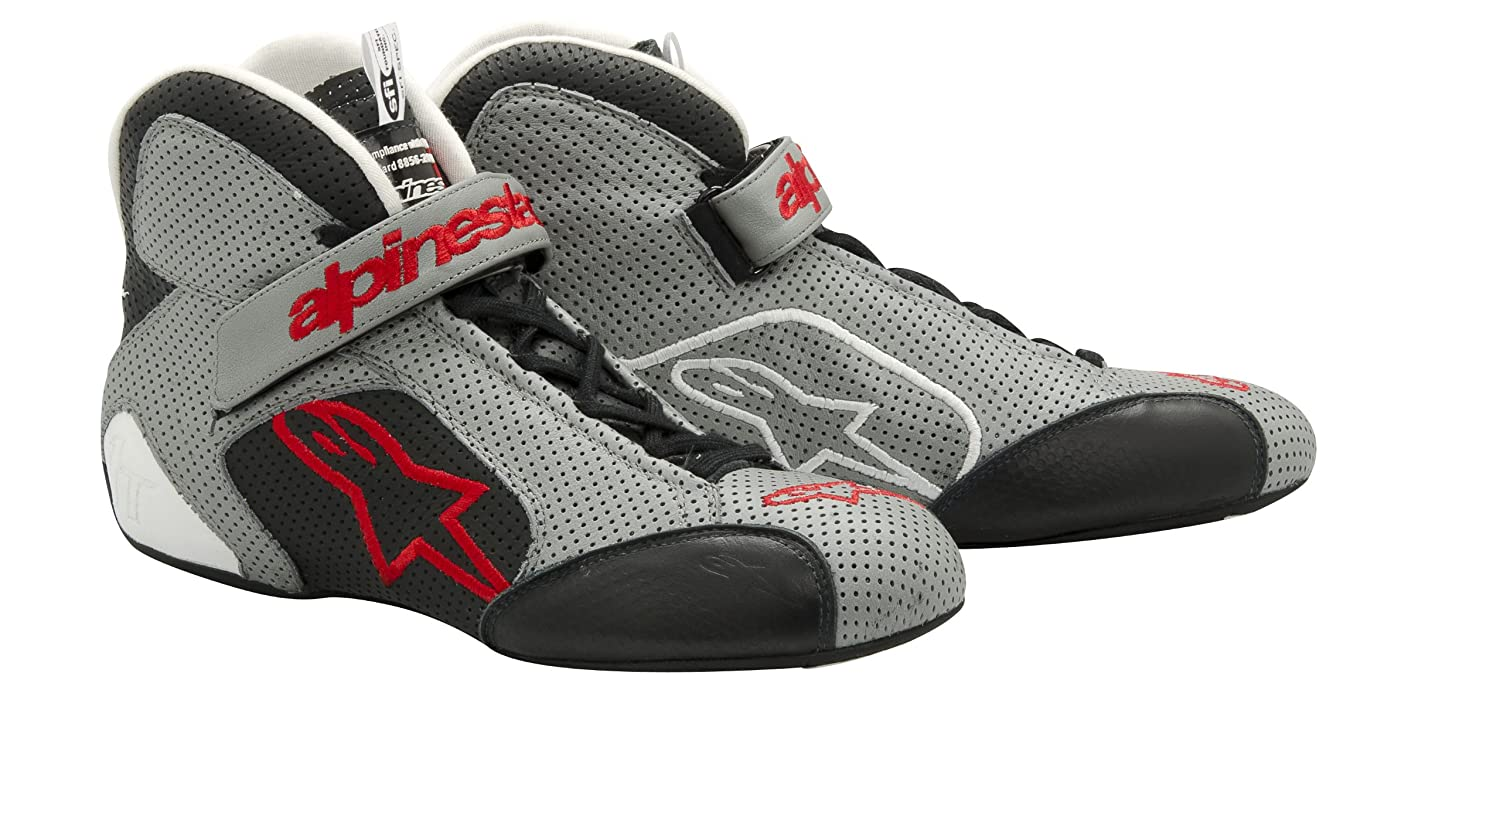 Alpinestars 2710112-913-9.5 Gray//Black//Red Size-9.5 Tech 1-T Shoes